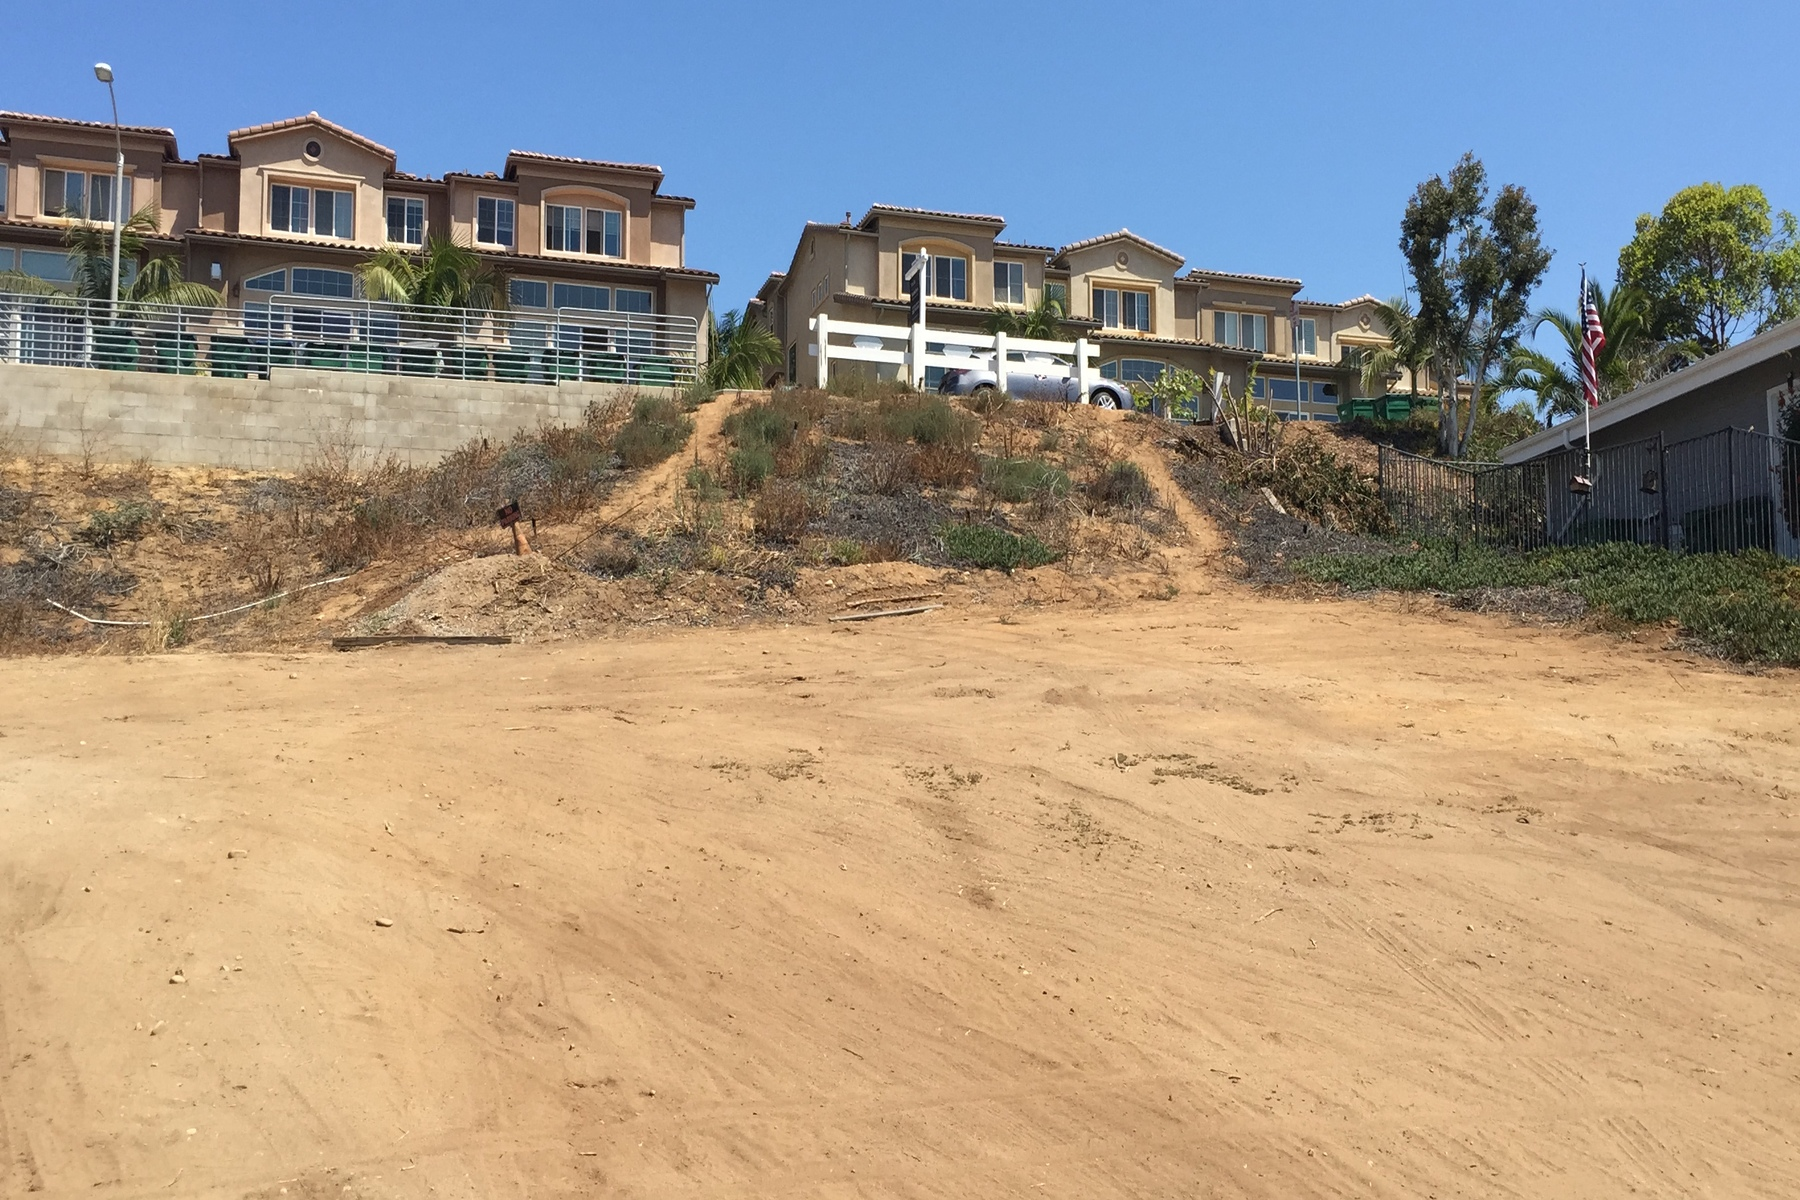 Additional photo for property listing at LOT Harrison Street Lot 11  Carlsbad, California 92008 Estados Unidos